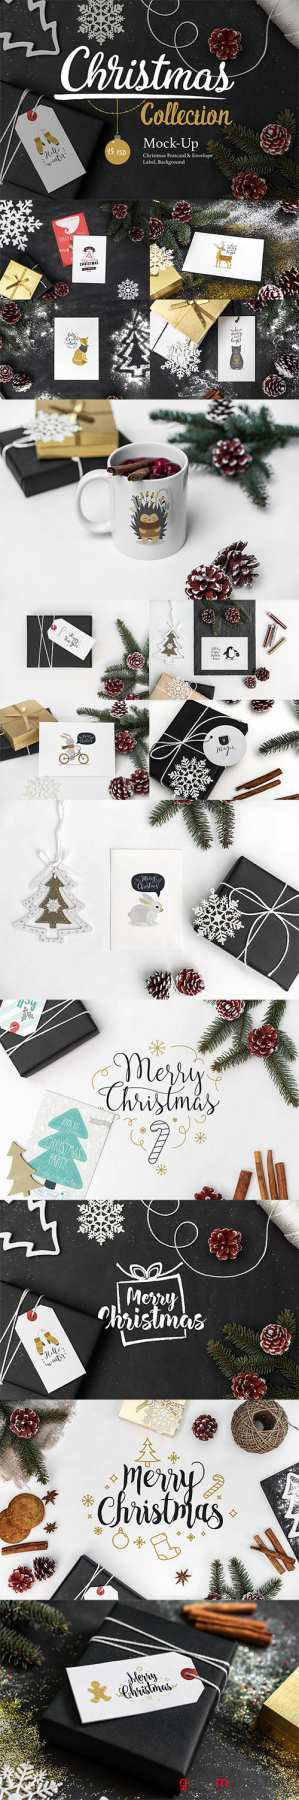 PSD Christmas Mock-Up Collection